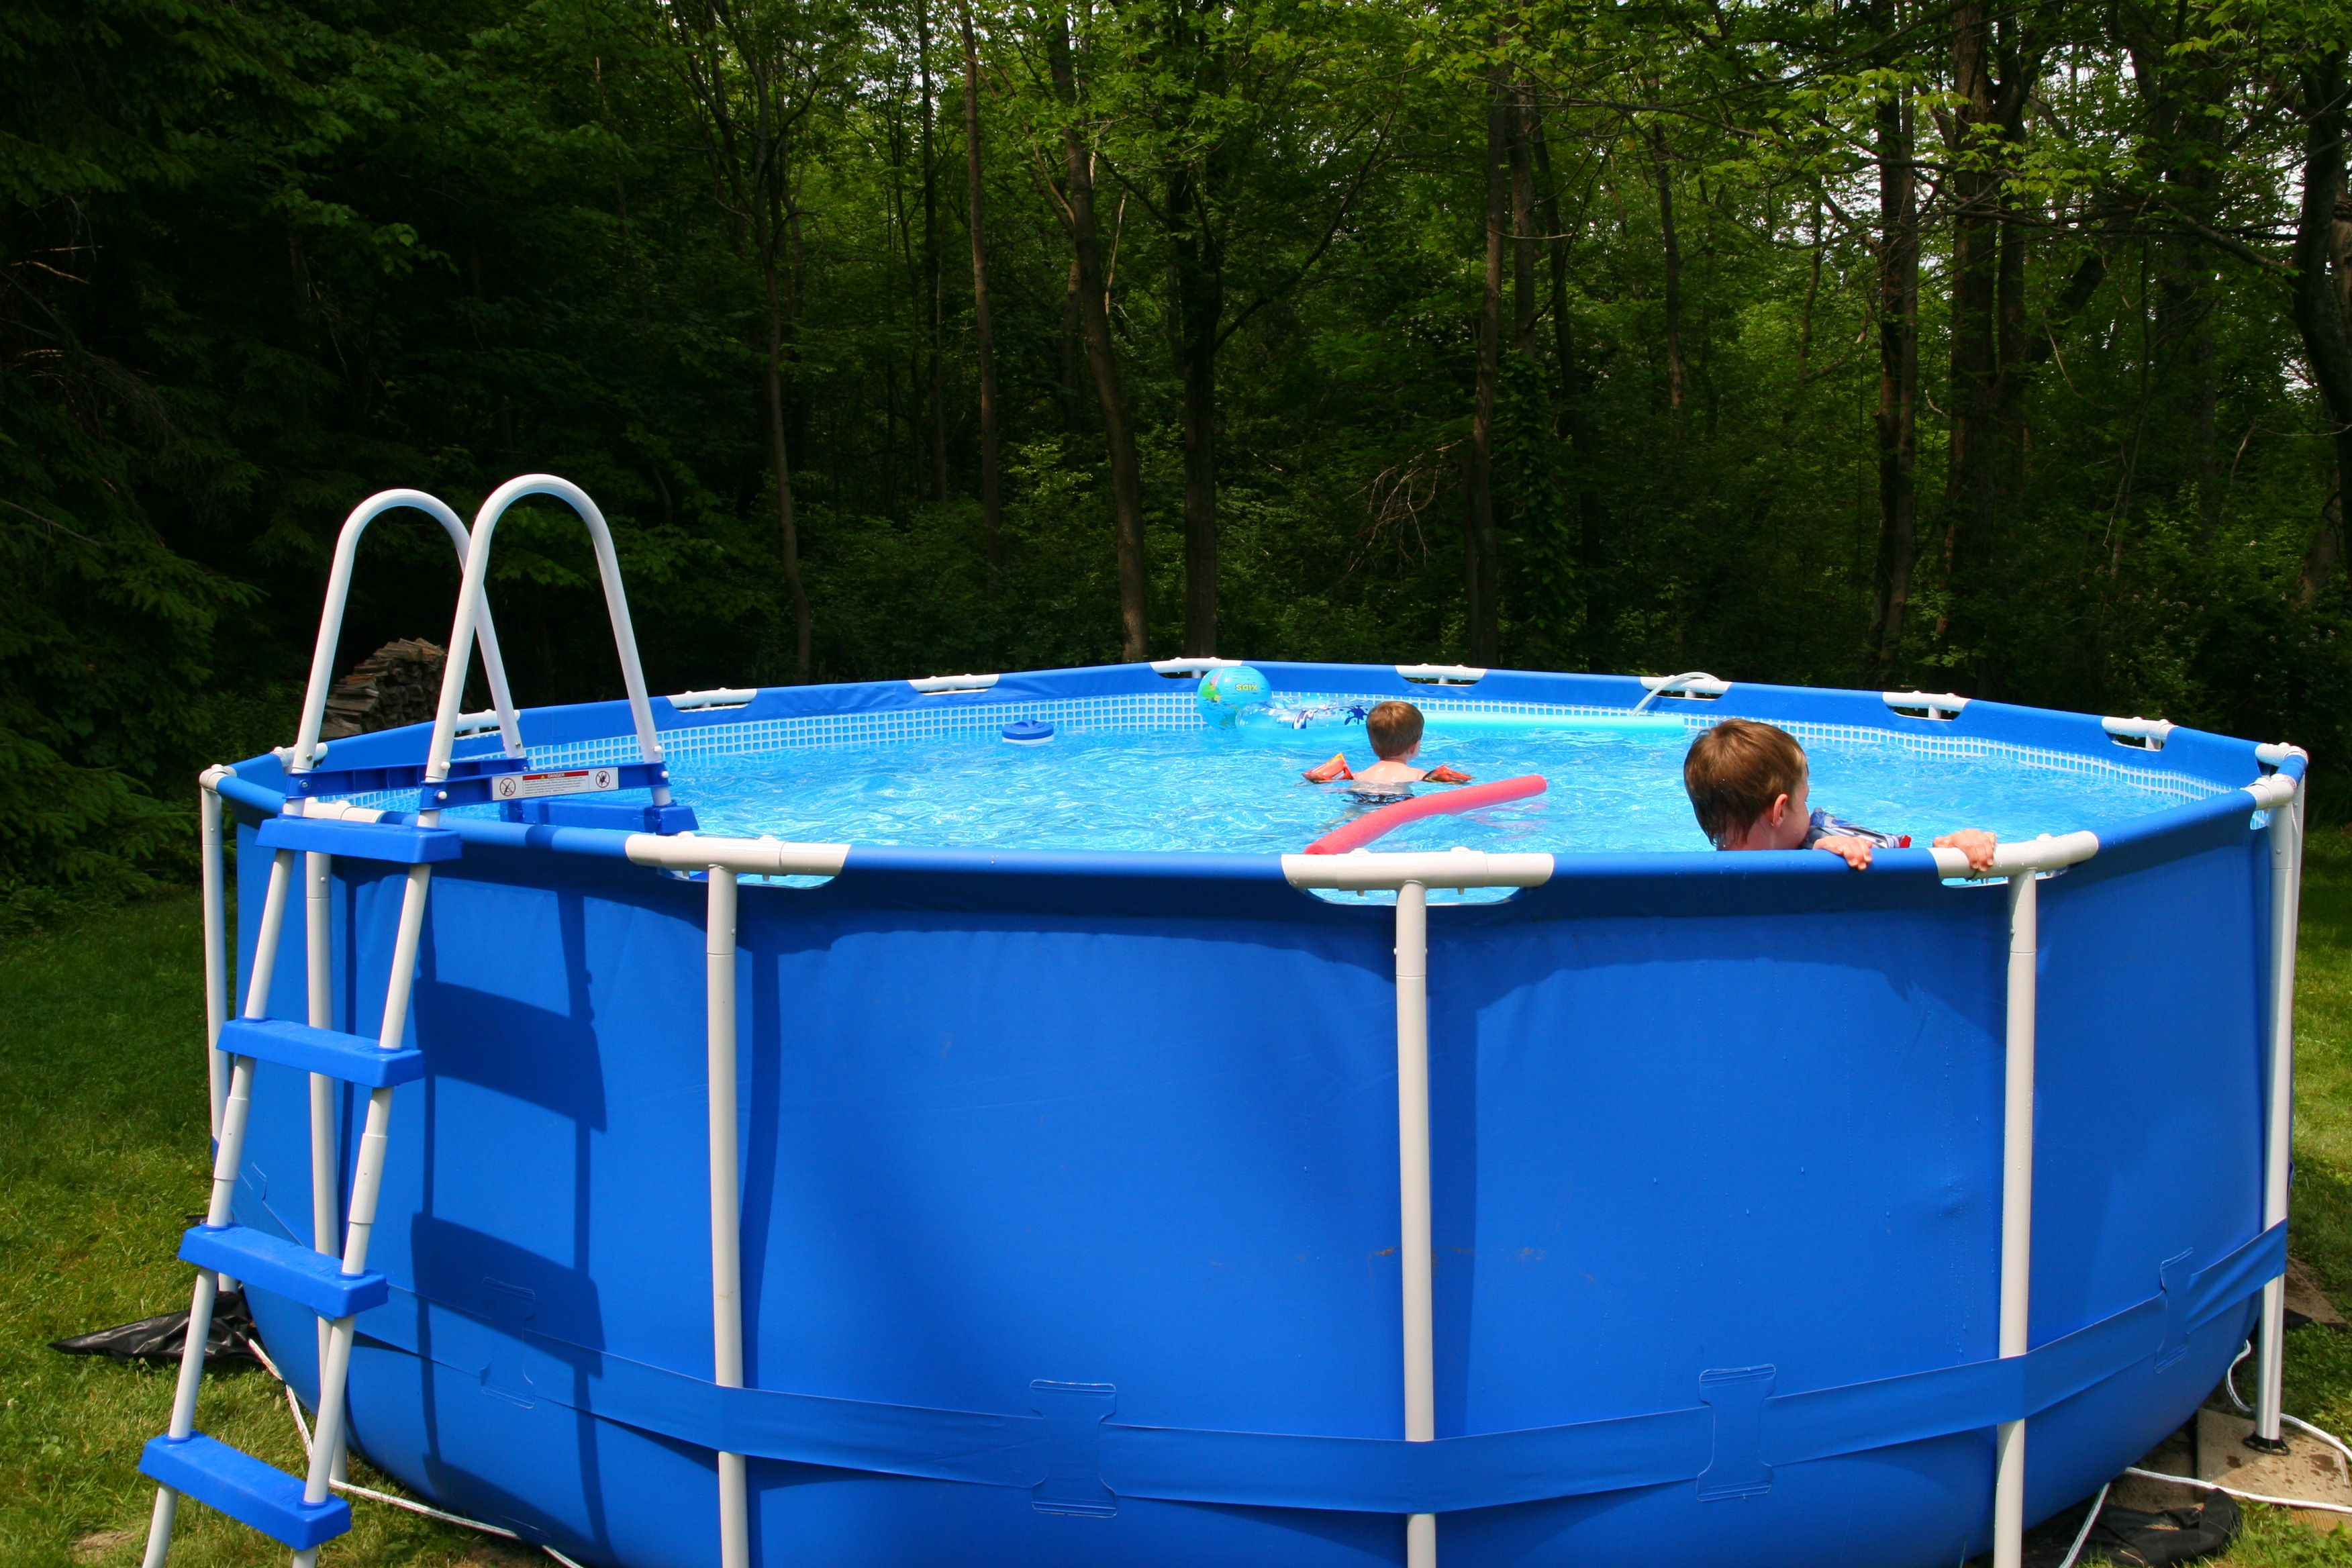 How to Care for and Chlorinate an Intex Metal Frame Pool | Pinterest